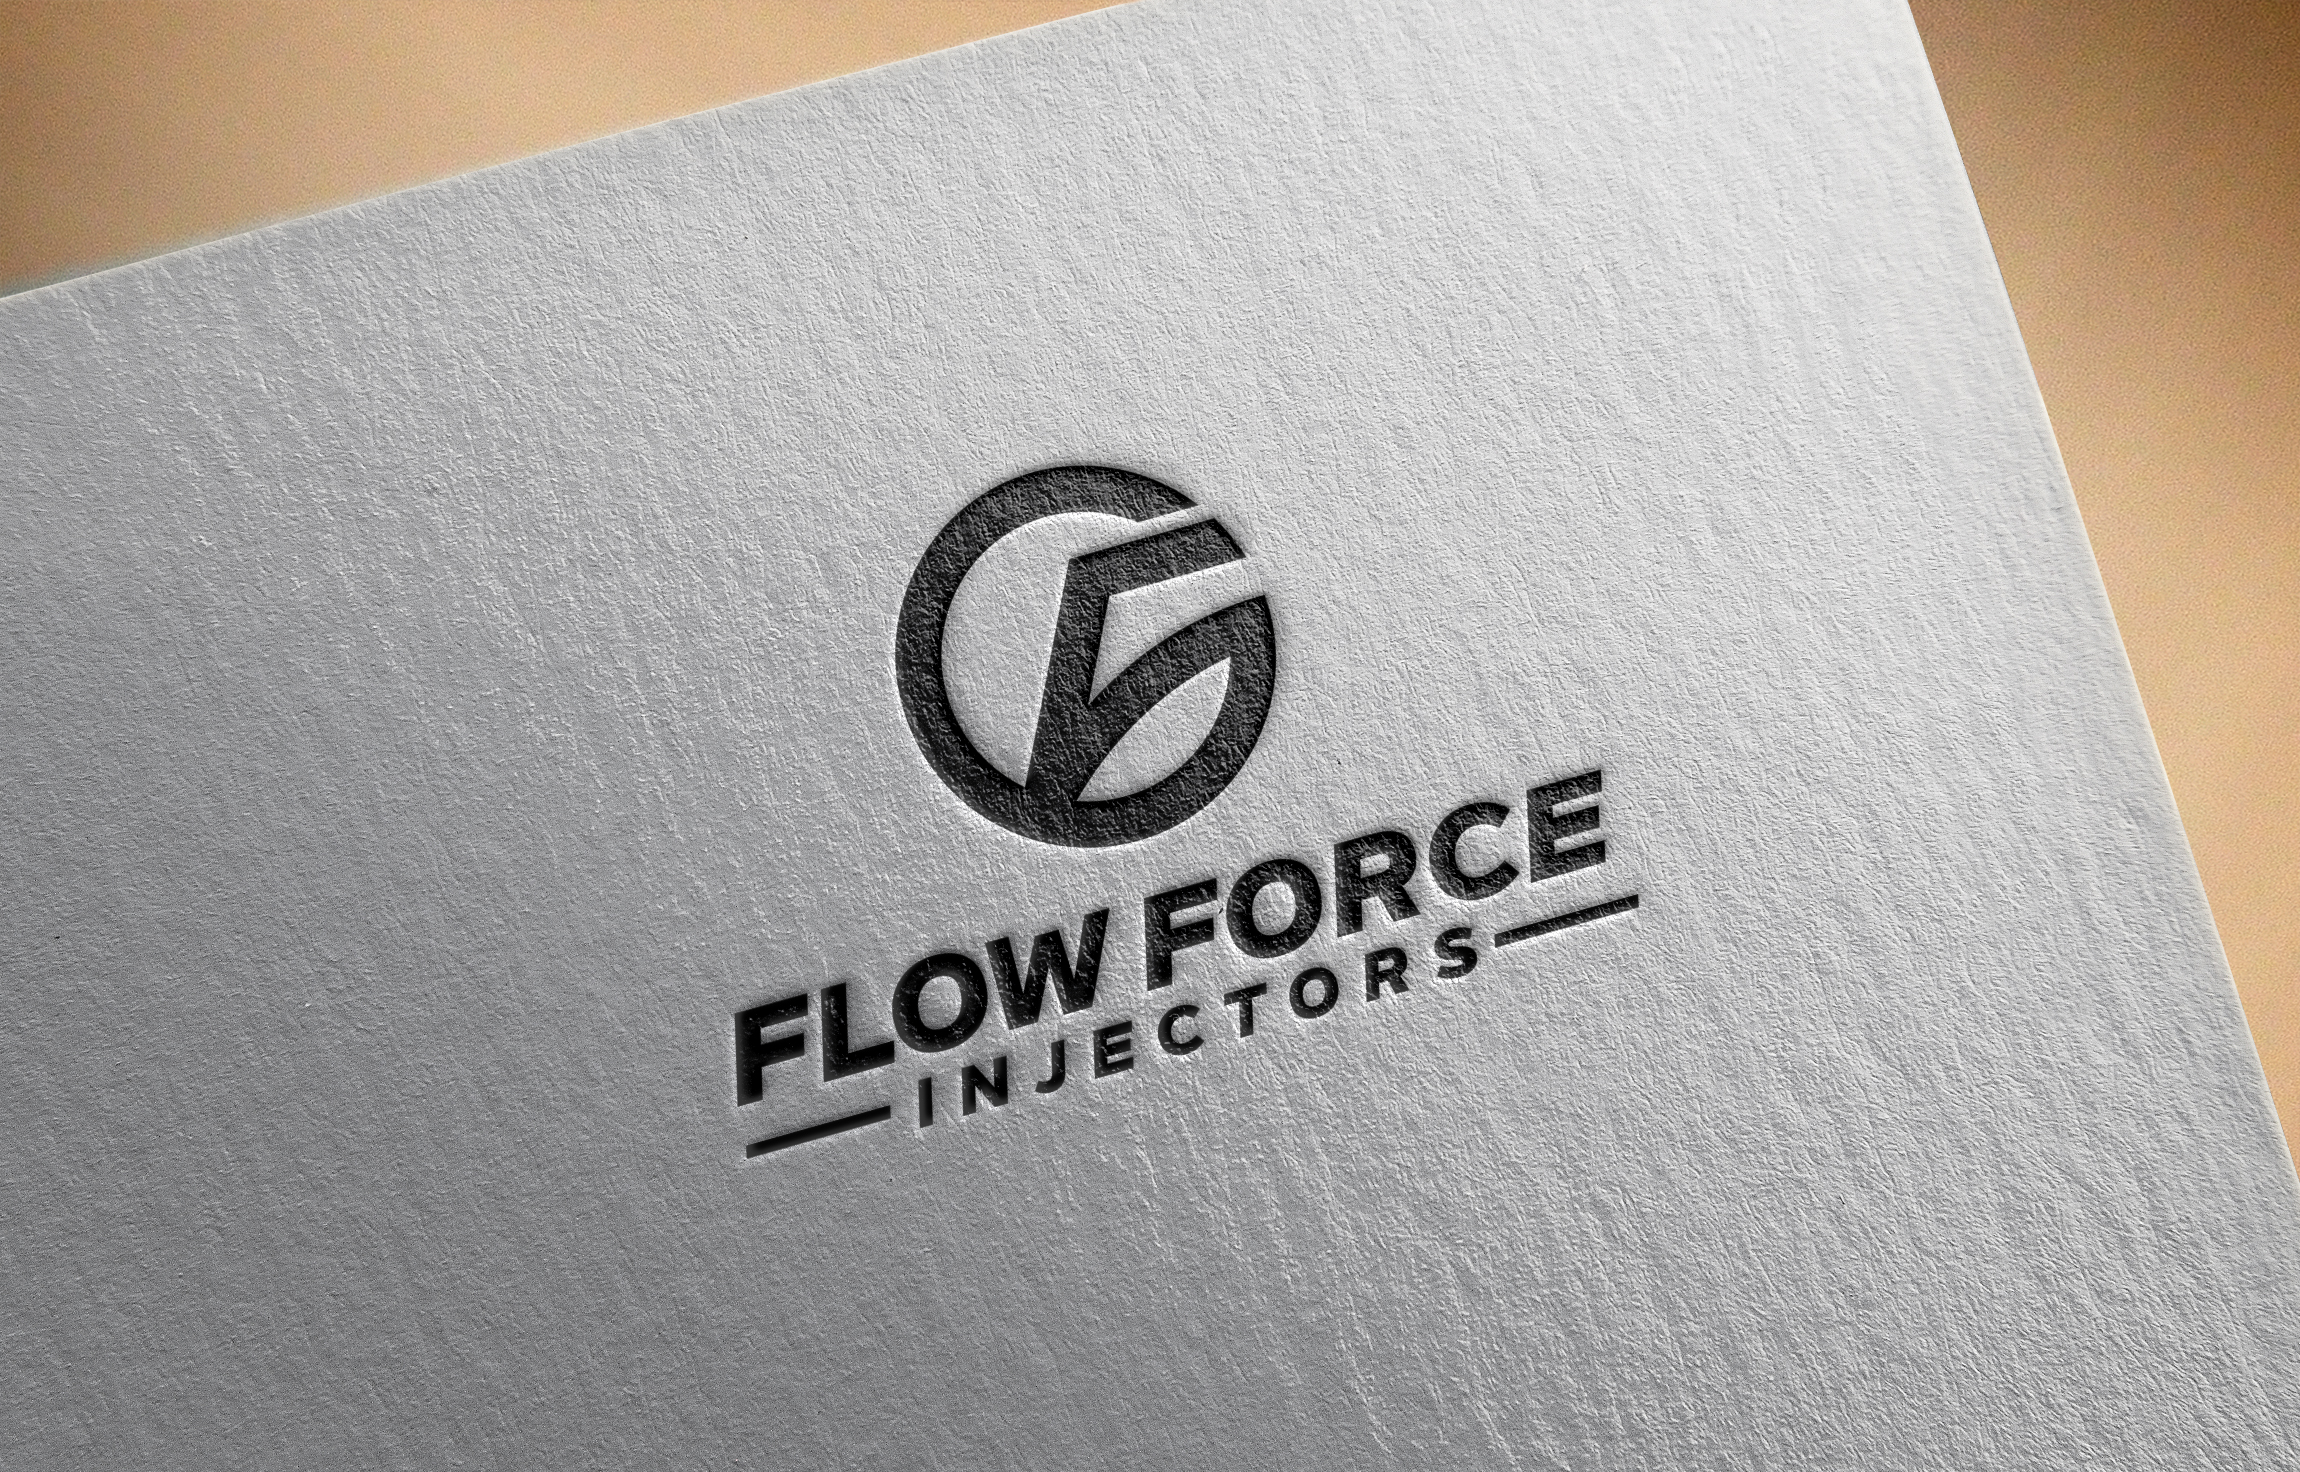 Logo Design by Tauhid Shaikh - Entry No. 126 in the Logo Design Contest Fun Logo Design for Flow Force Injectors.